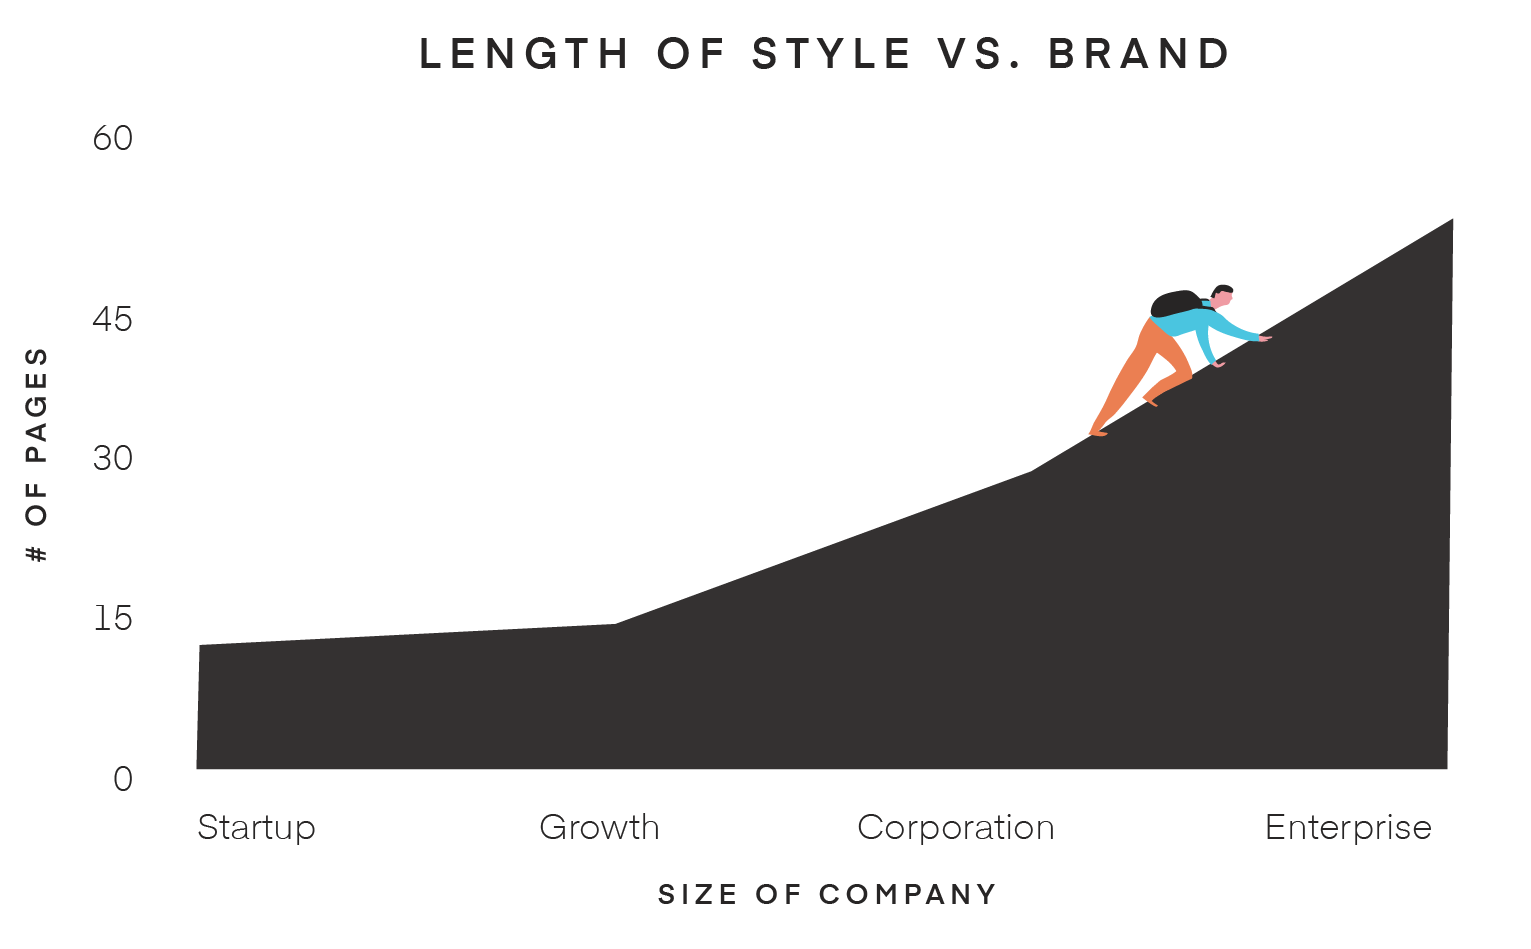 Length of style vs Brand chart